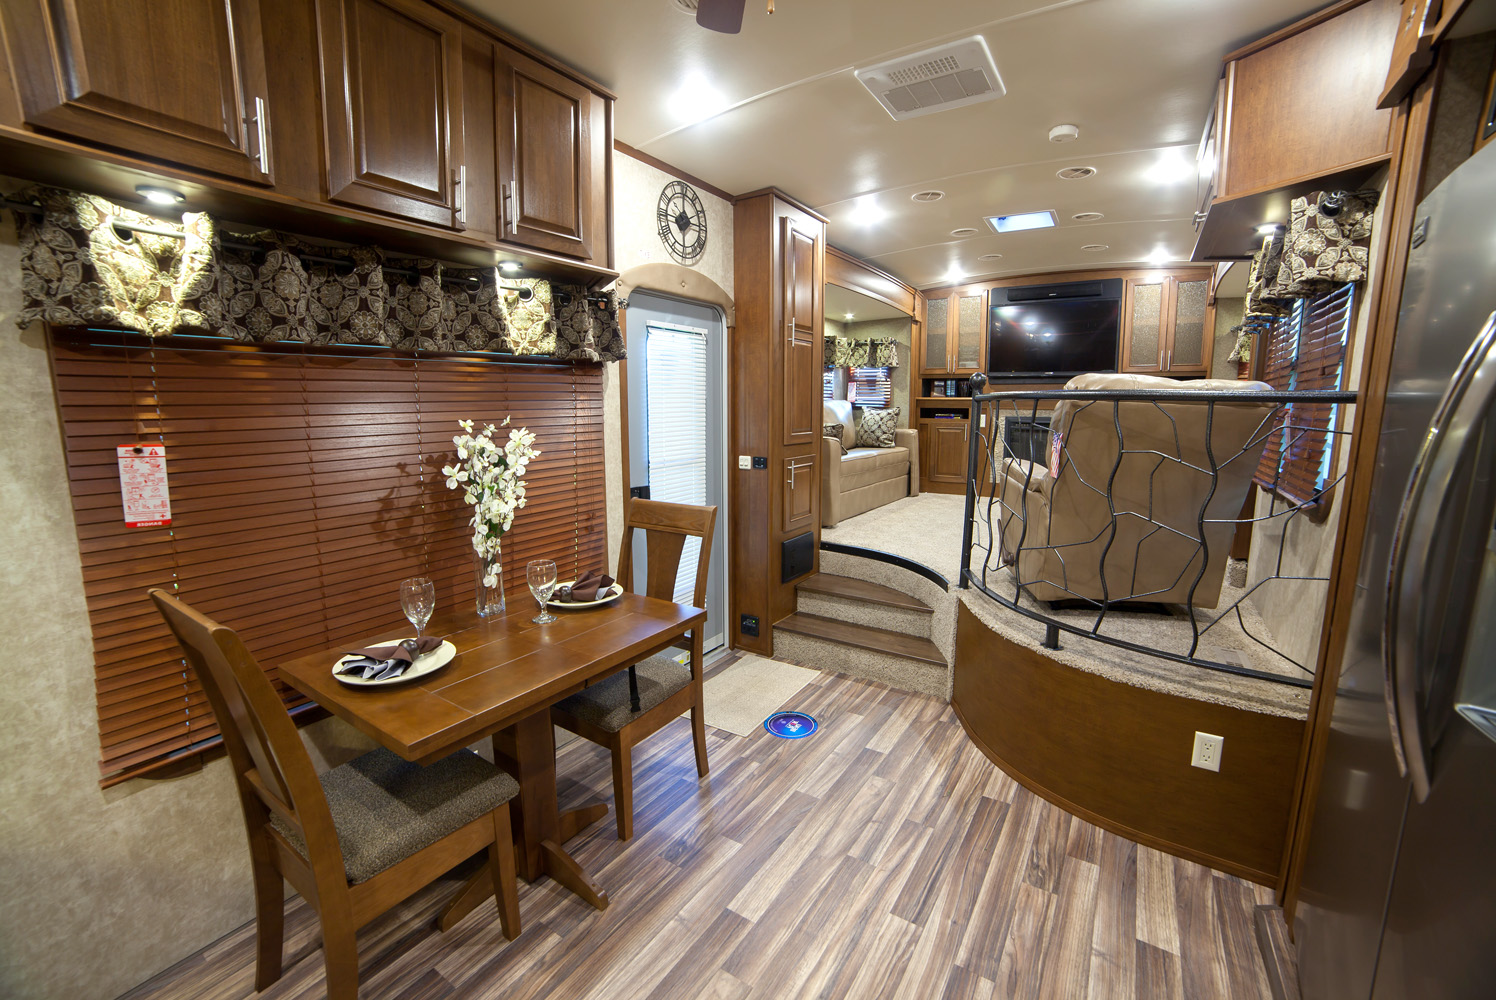 Fifth wheel campers with front living rooms roy home design - Front living room fifth wheel used ...